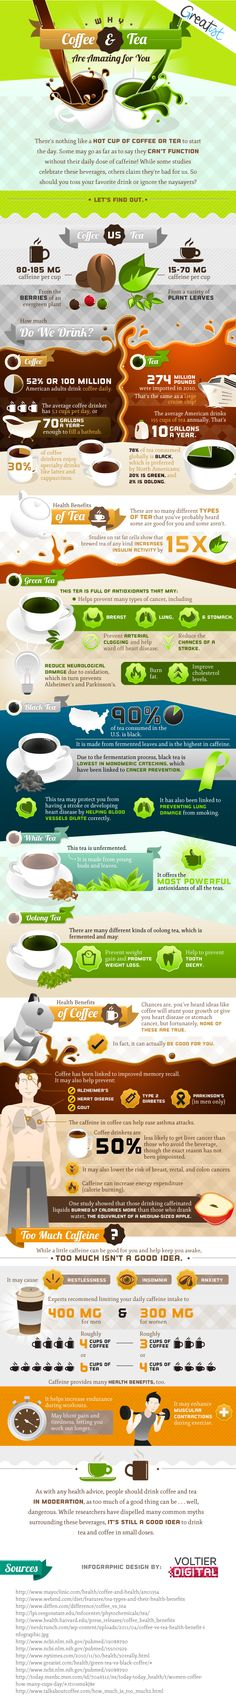 WHY COFFEE & TEA ARE AMAZING FOR YOU ......... There's nothing like a hot cup of coffee or tea to start the day. Some may go as far as to say they can't function without their daily dose of caffeine! While some studies celebrate these beverages, others claim they're bad for us. So should you toss your favorite drink or ignore the naysayers?...... Let's find out ! .....